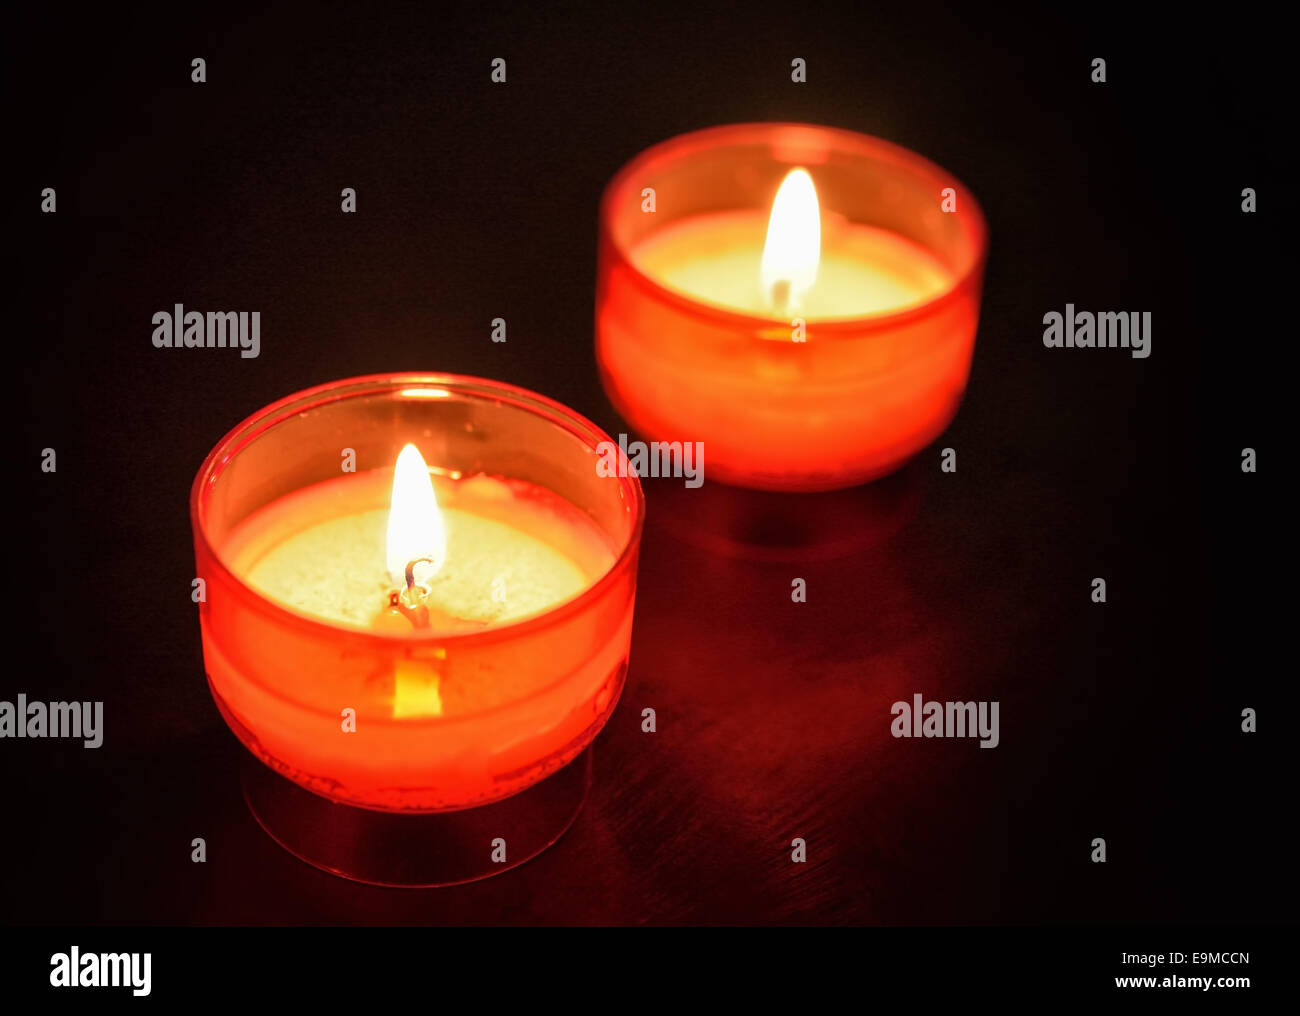 Dark room with candle light - Red Firing Candles On Wooden Table In Dark Room Closeup Image